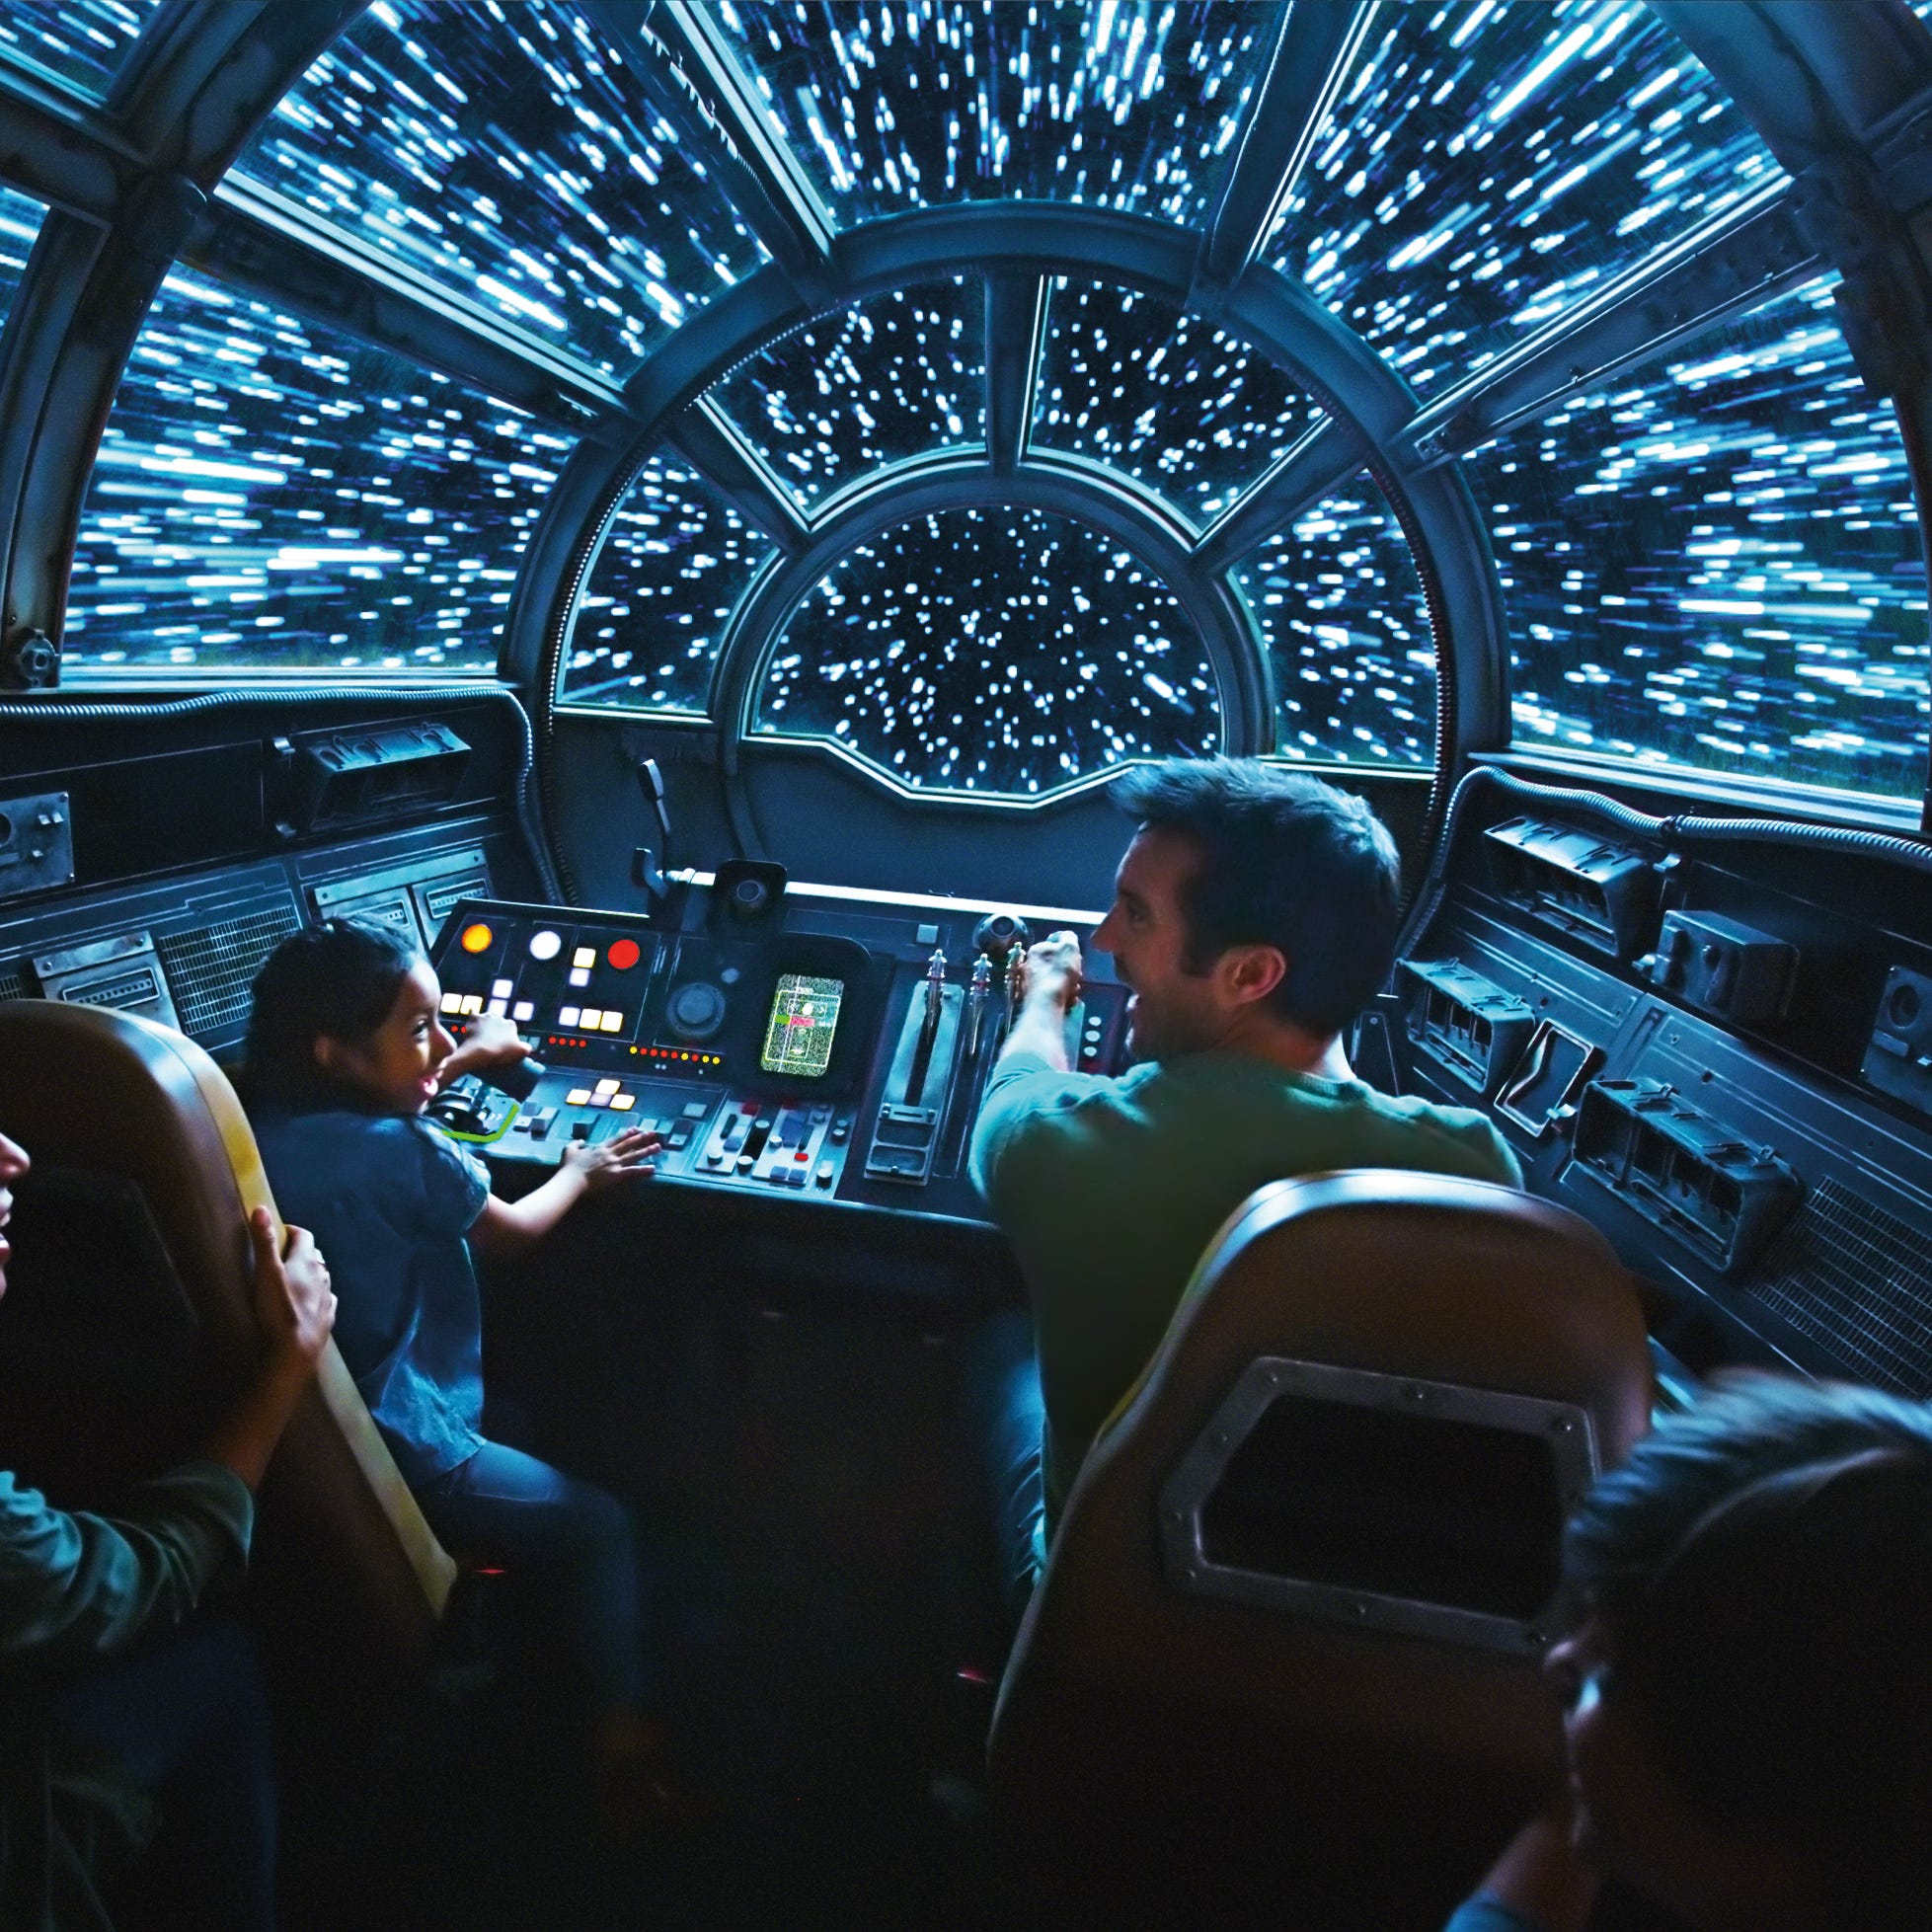 'Star Wars': How to have fun using the Force at Disneyland's Galaxy Edge land